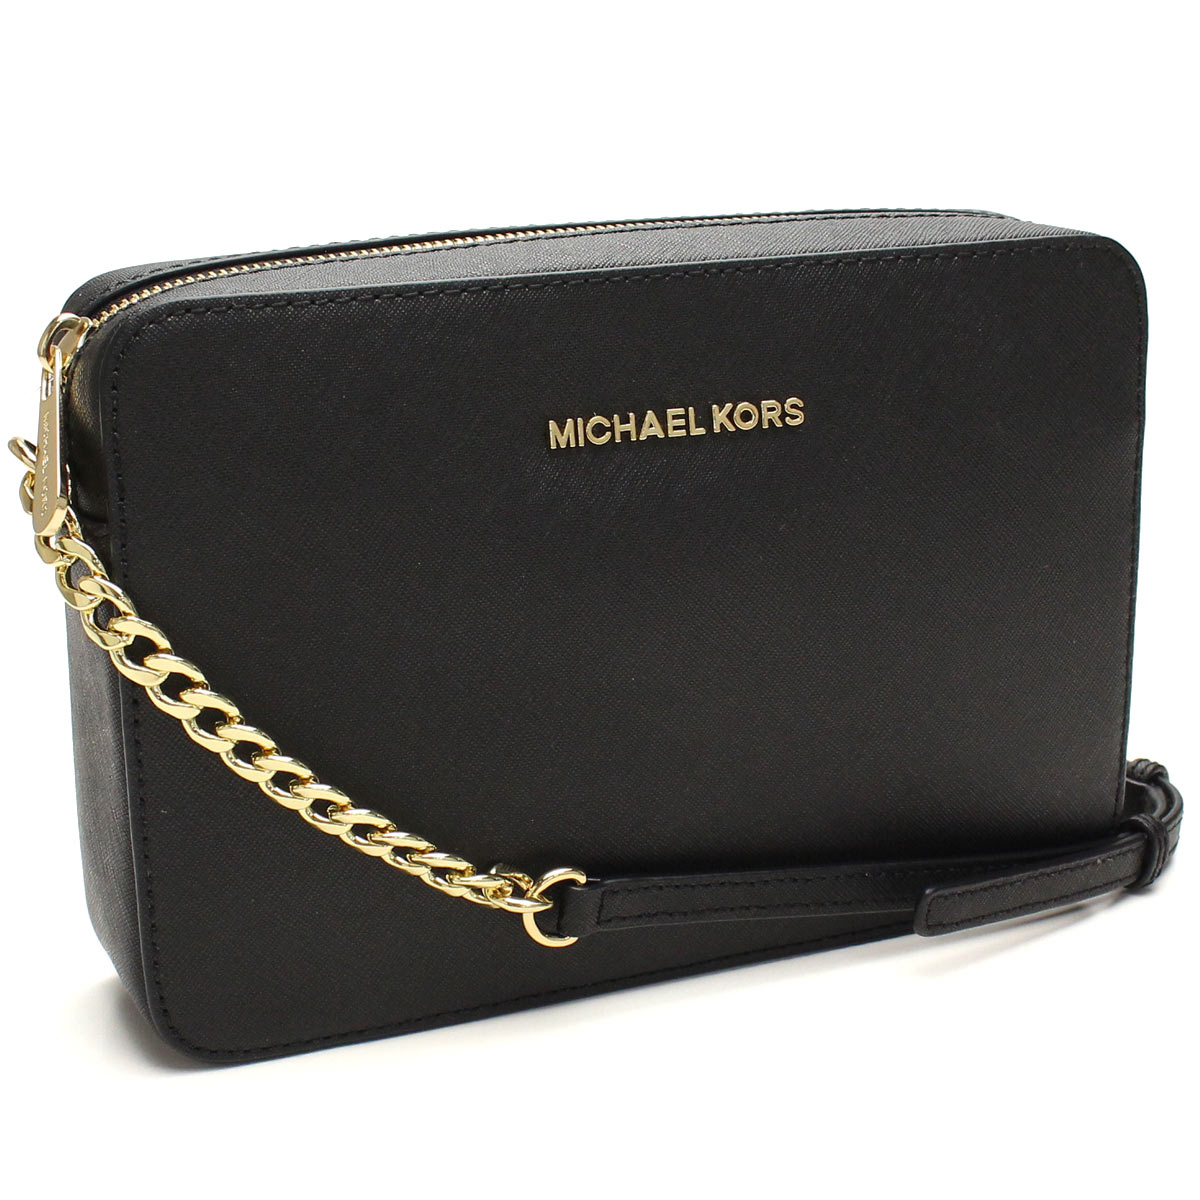 Michael Kors (MICHAEL KORS) JET SET TRAVEL diagonally over the shoulder 32S4GTVC3L BLACK black( taxfree/send by EMS/authentic/A brand new item )